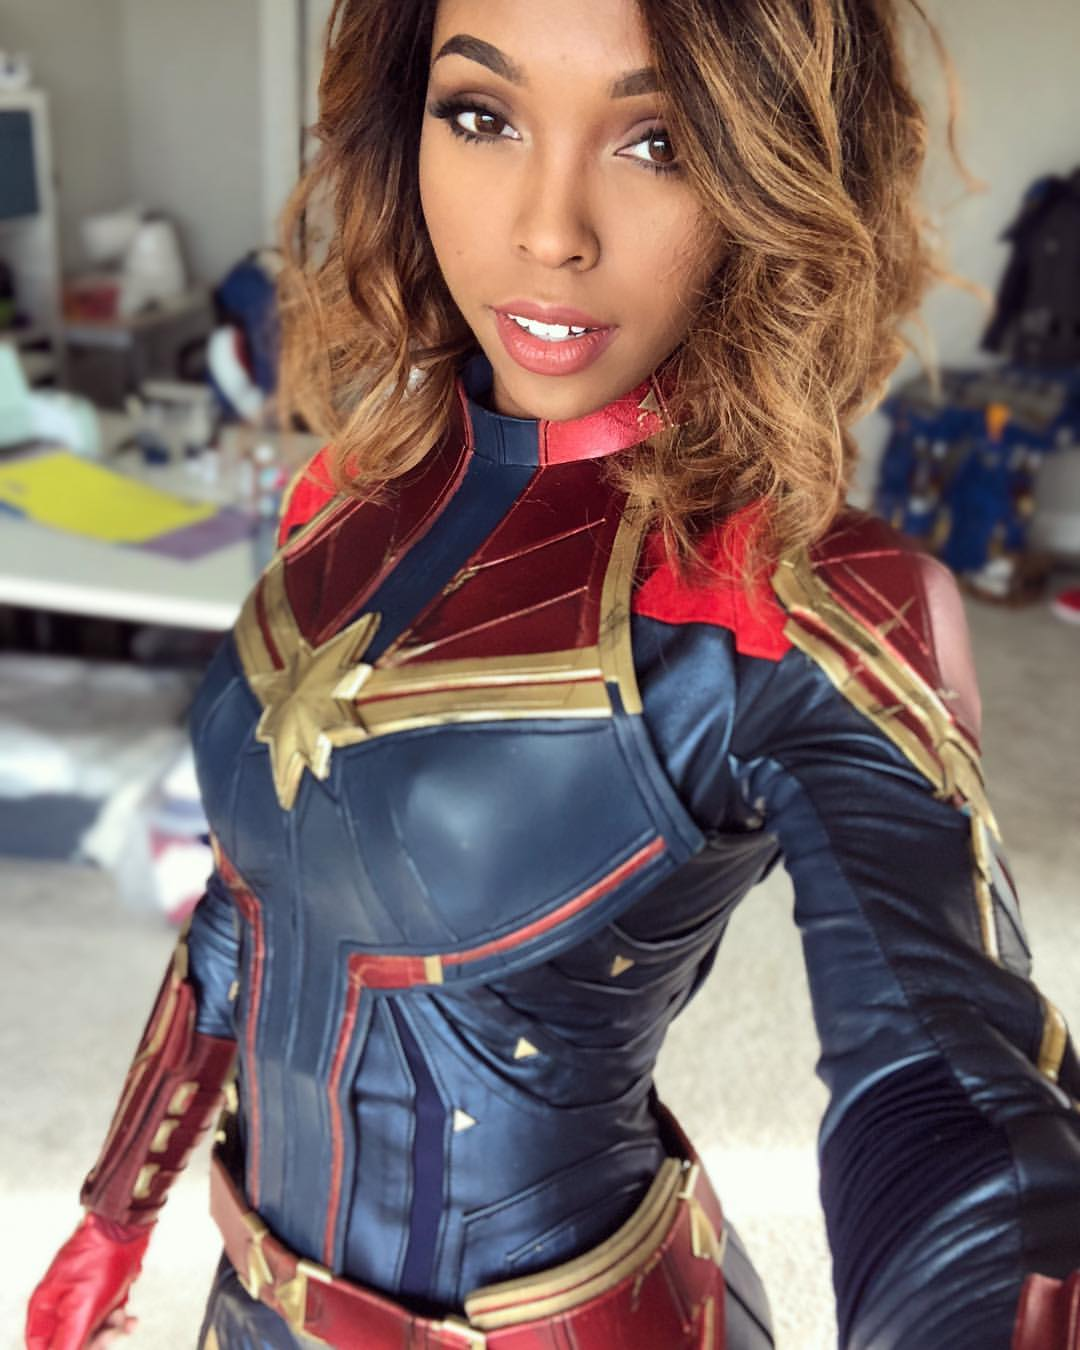 Go higher, further and faster with this amazing Captain Marvel cosplay by CutiePieSensei.